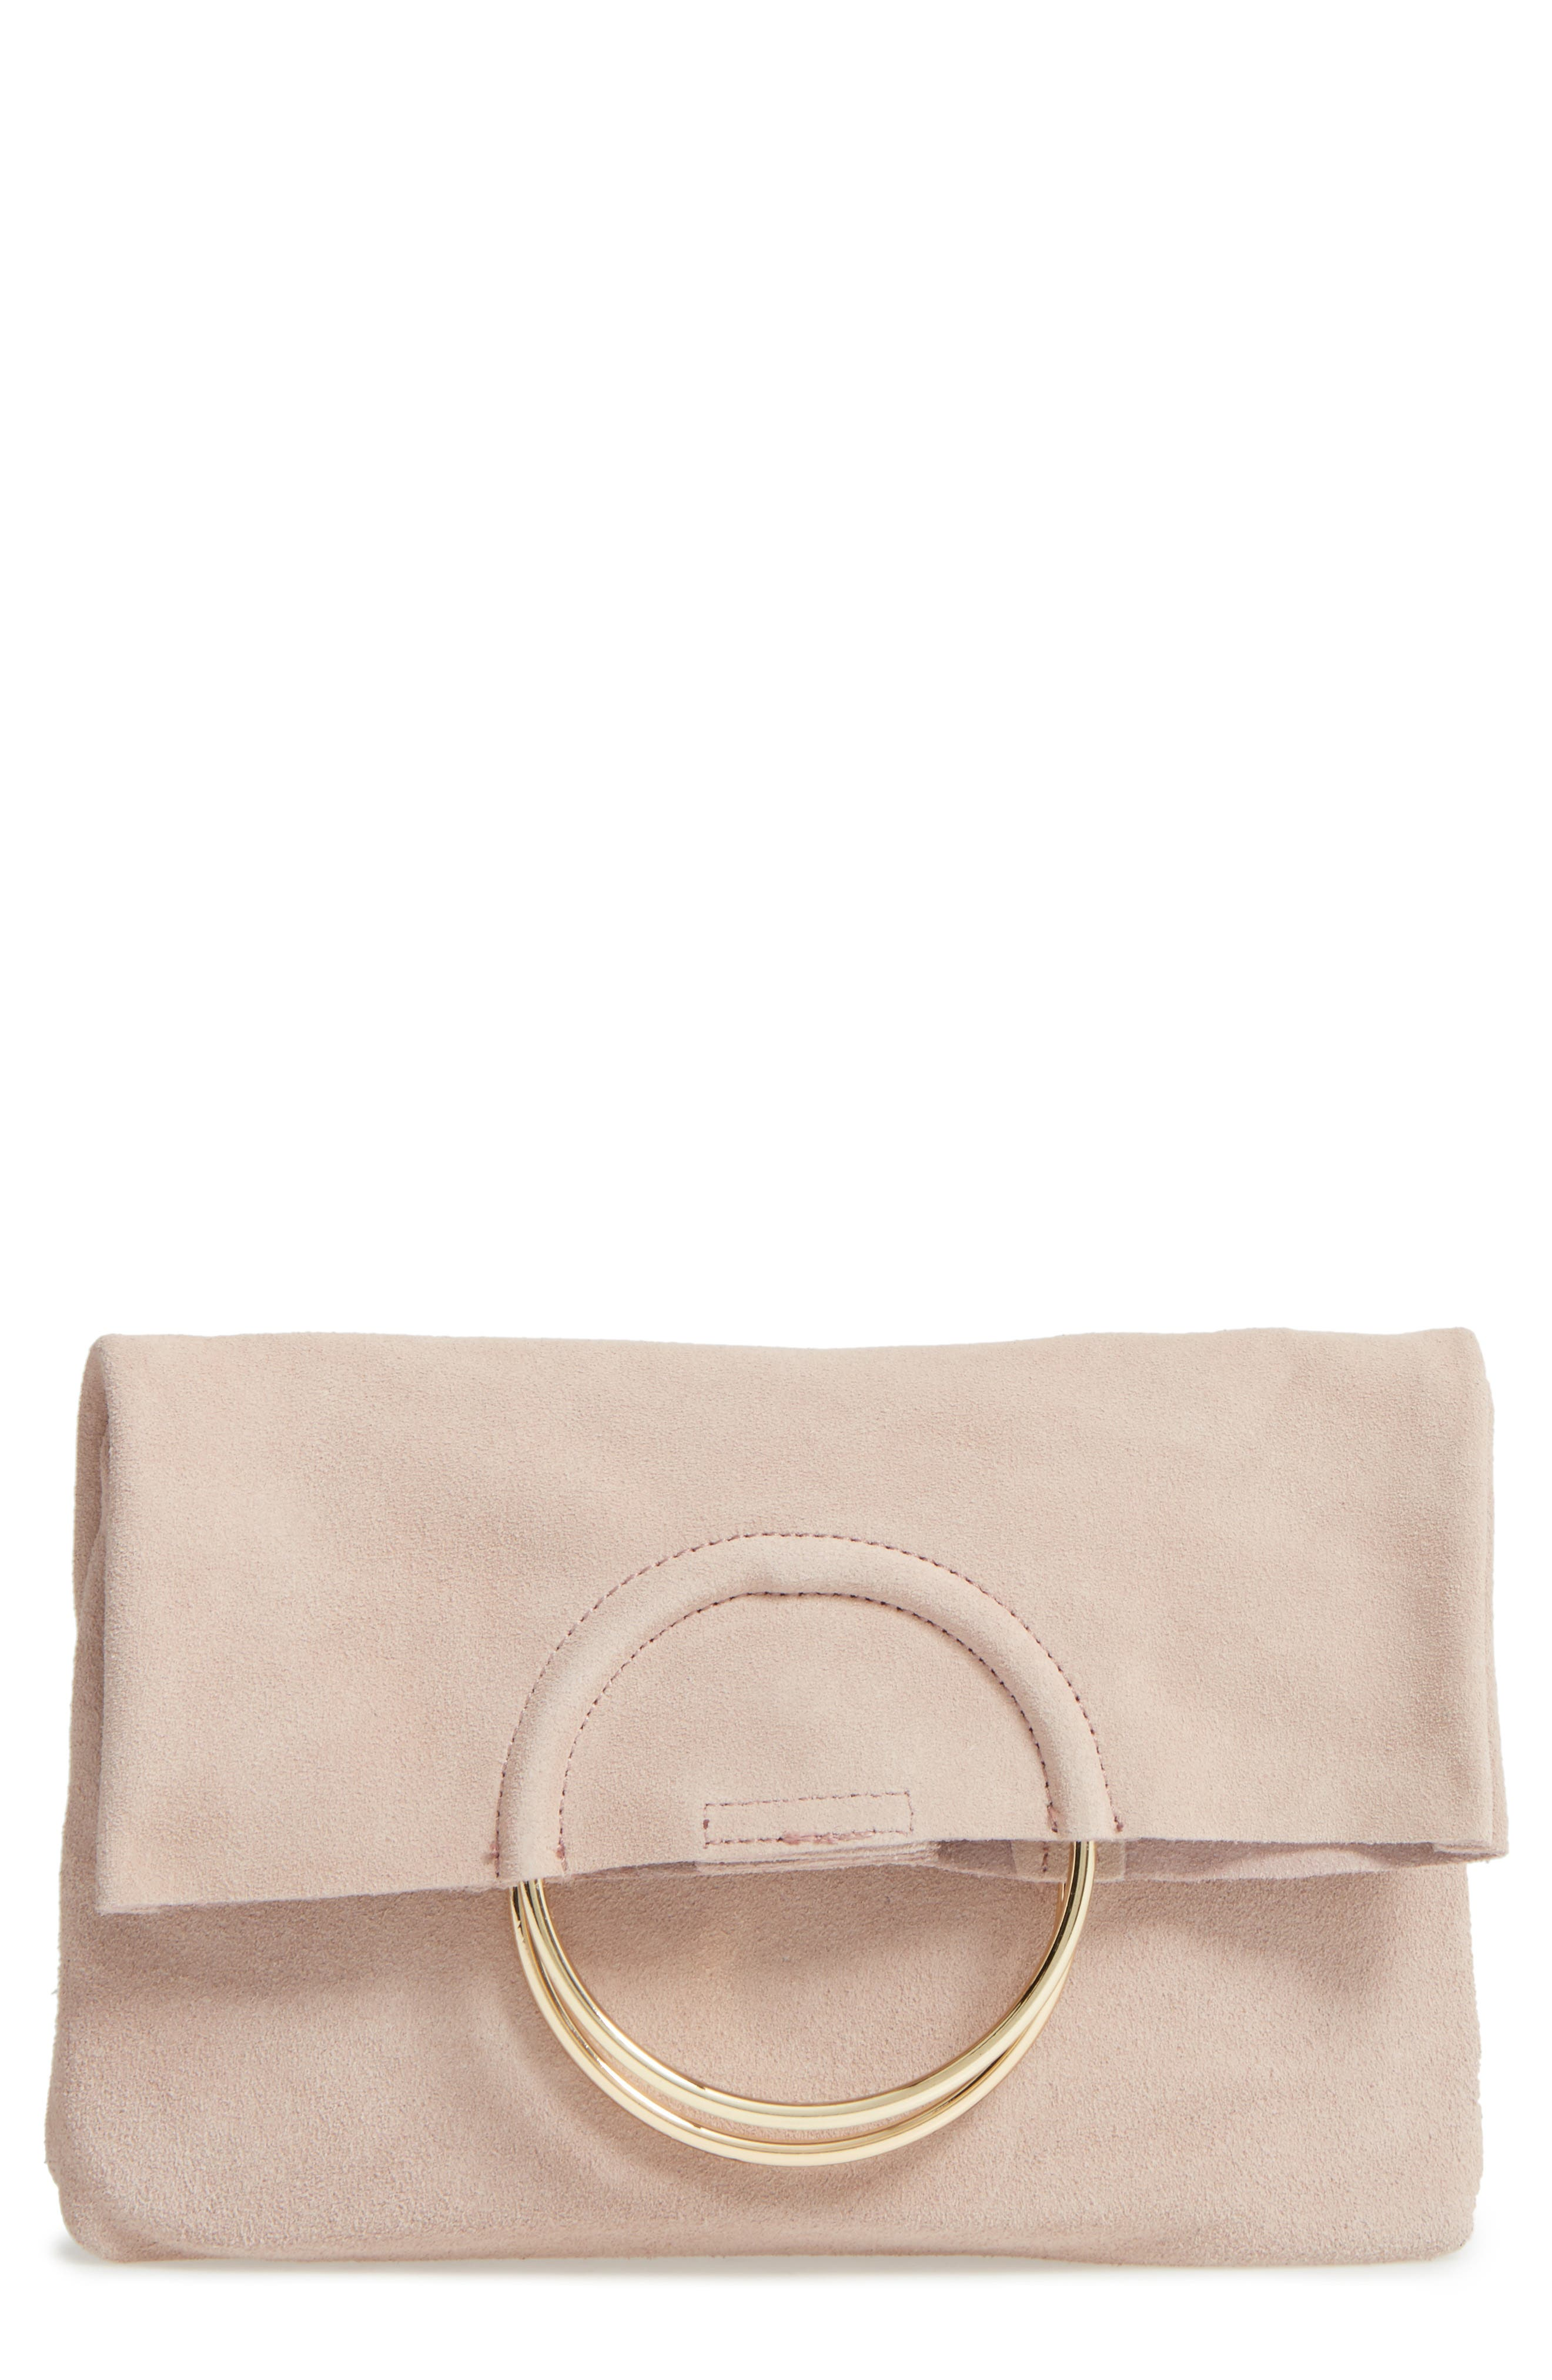 Alternate Image 1 Selected - Sole Society Maron Foldover Suede Clutch